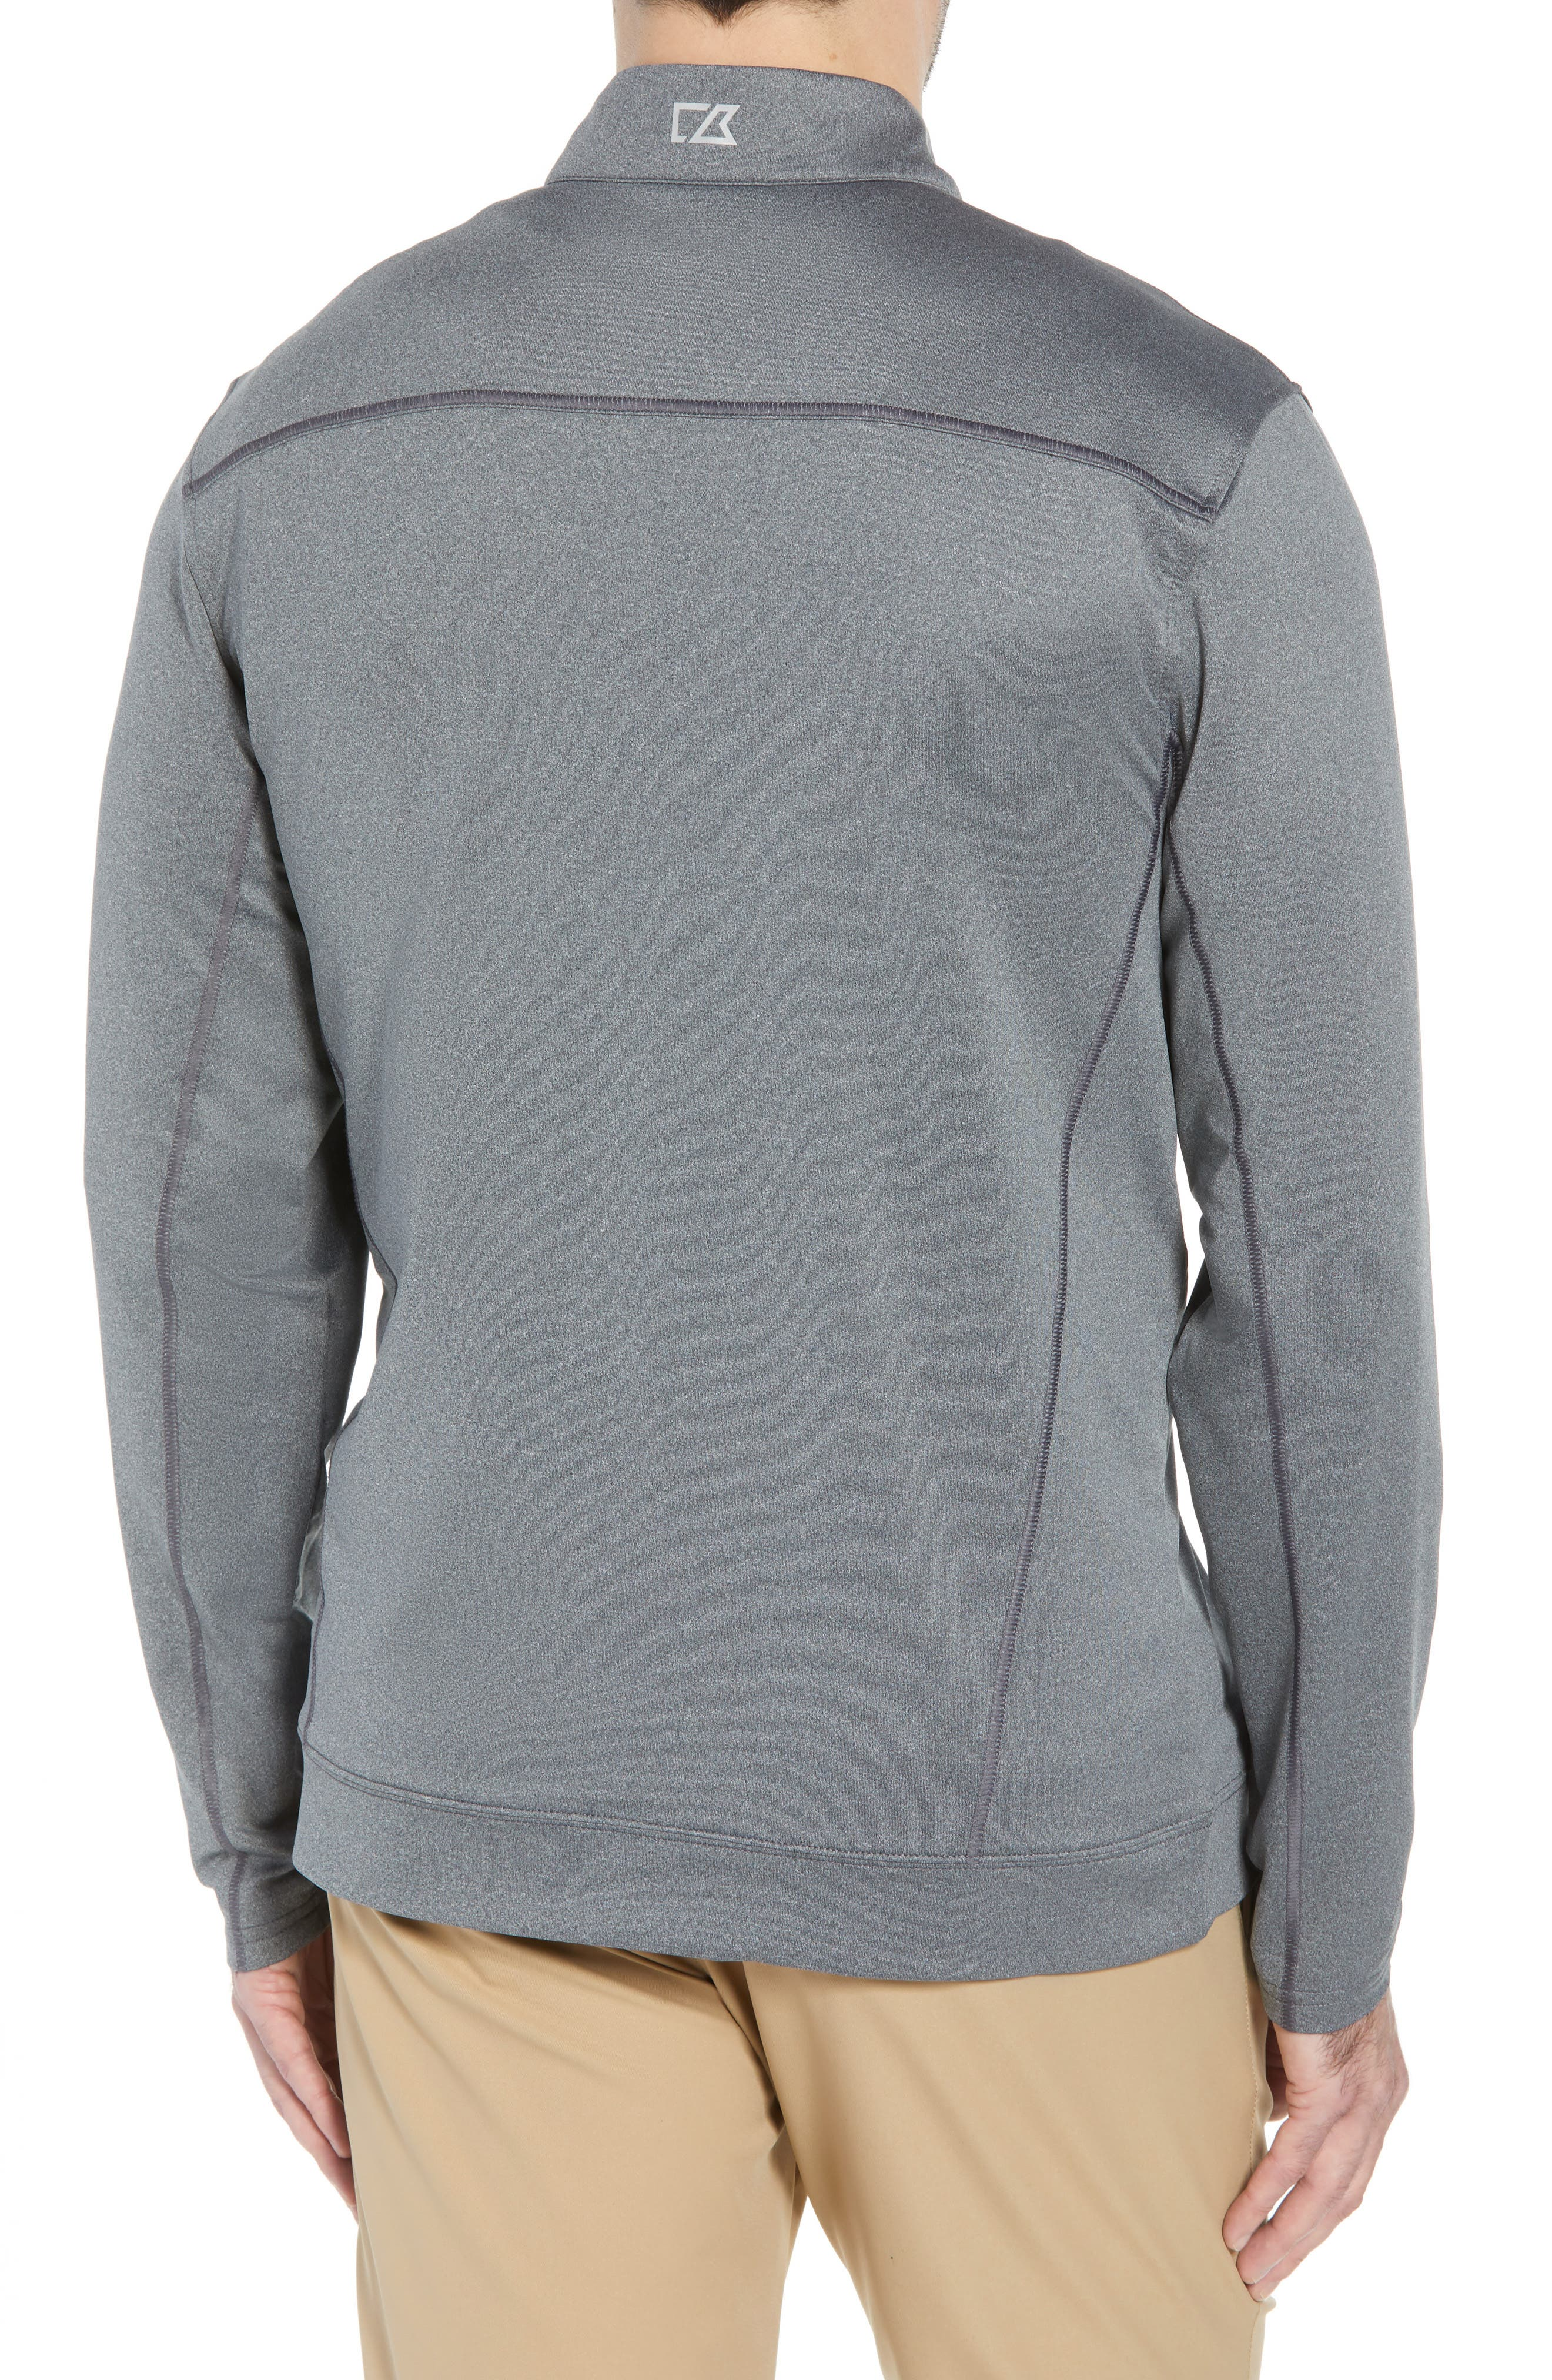 Endurance Tampa Bay Buccaneers Regular Fit Pullover,                             Alternate thumbnail 2, color,                             CHARCOAL HEATHER